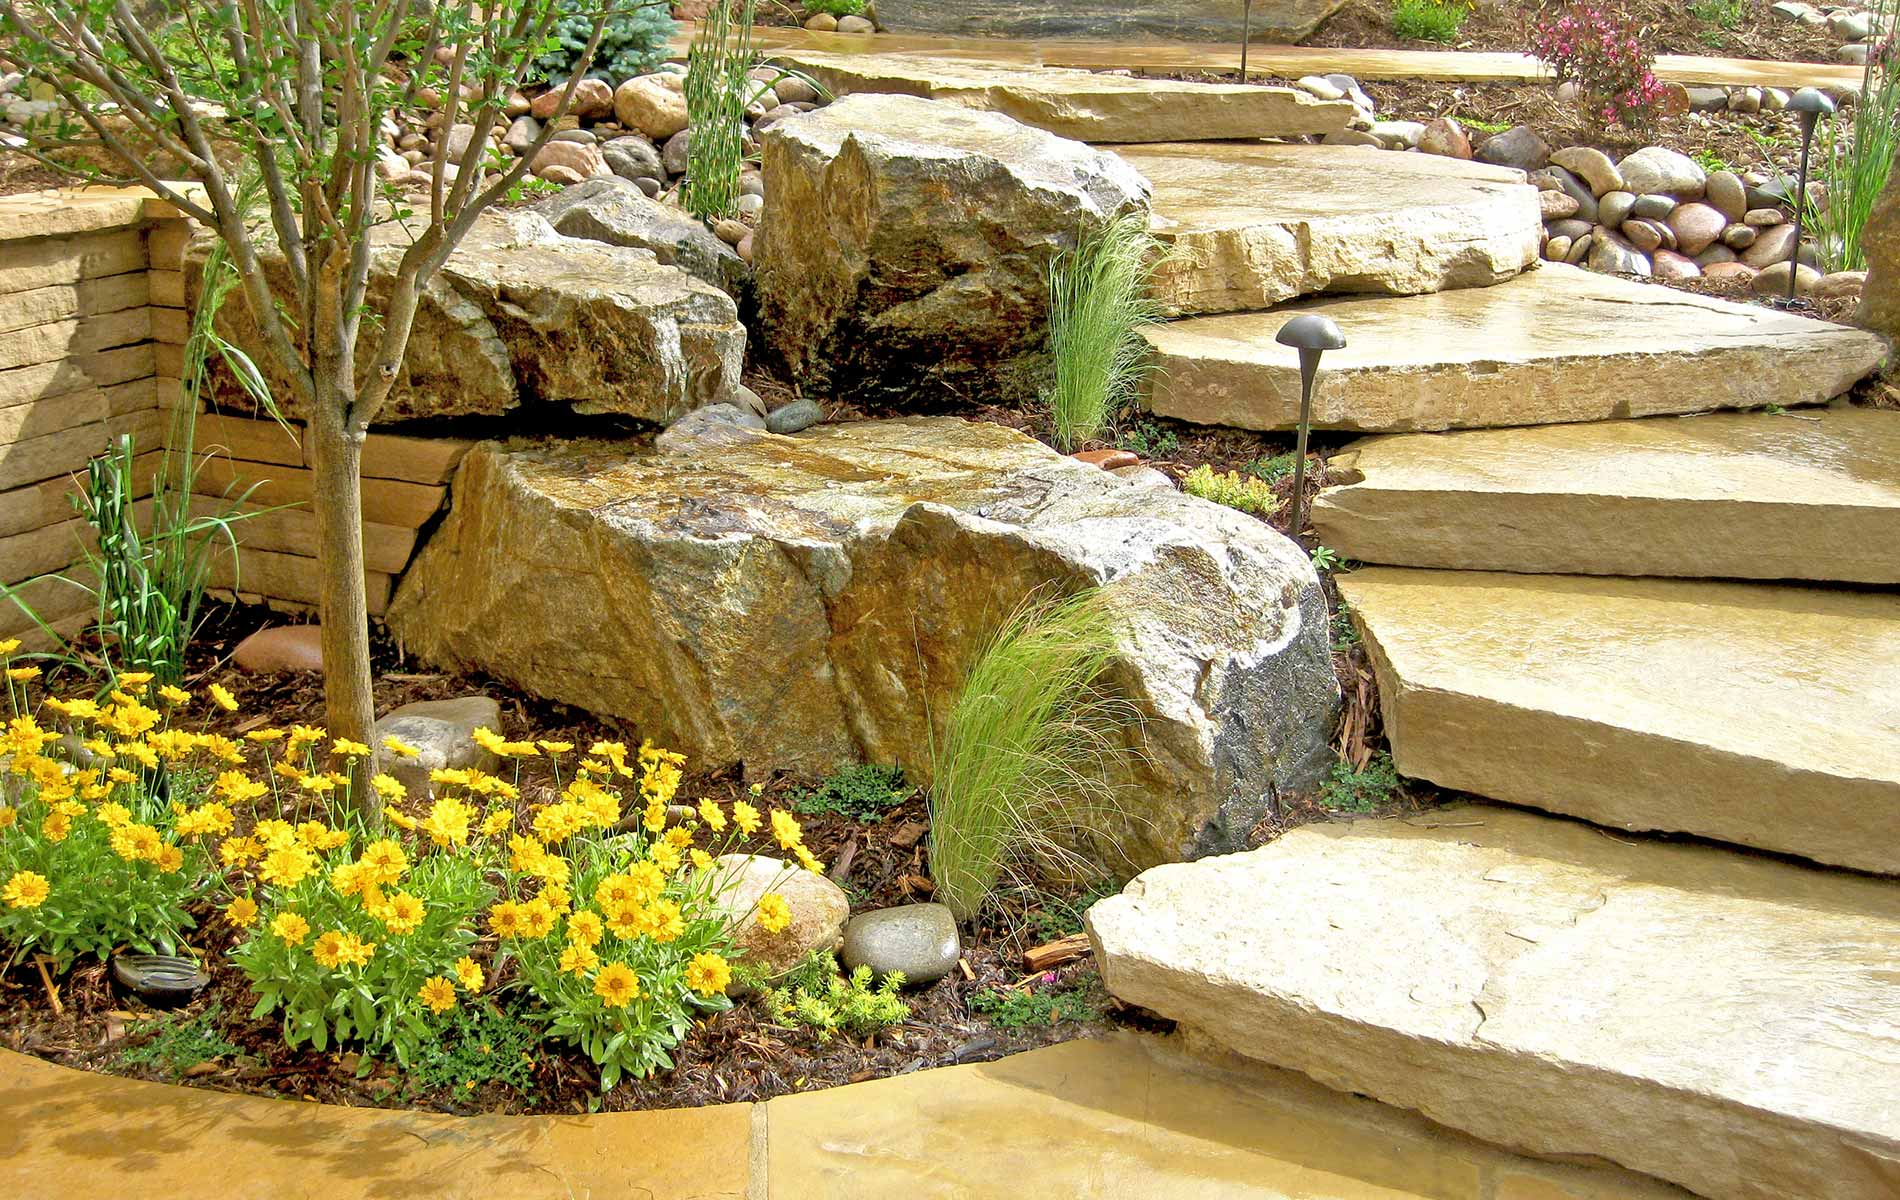 Natural stone stairs and plantings in Rustic Outdoor Living in Arvada Mile High Landscaping in Denver